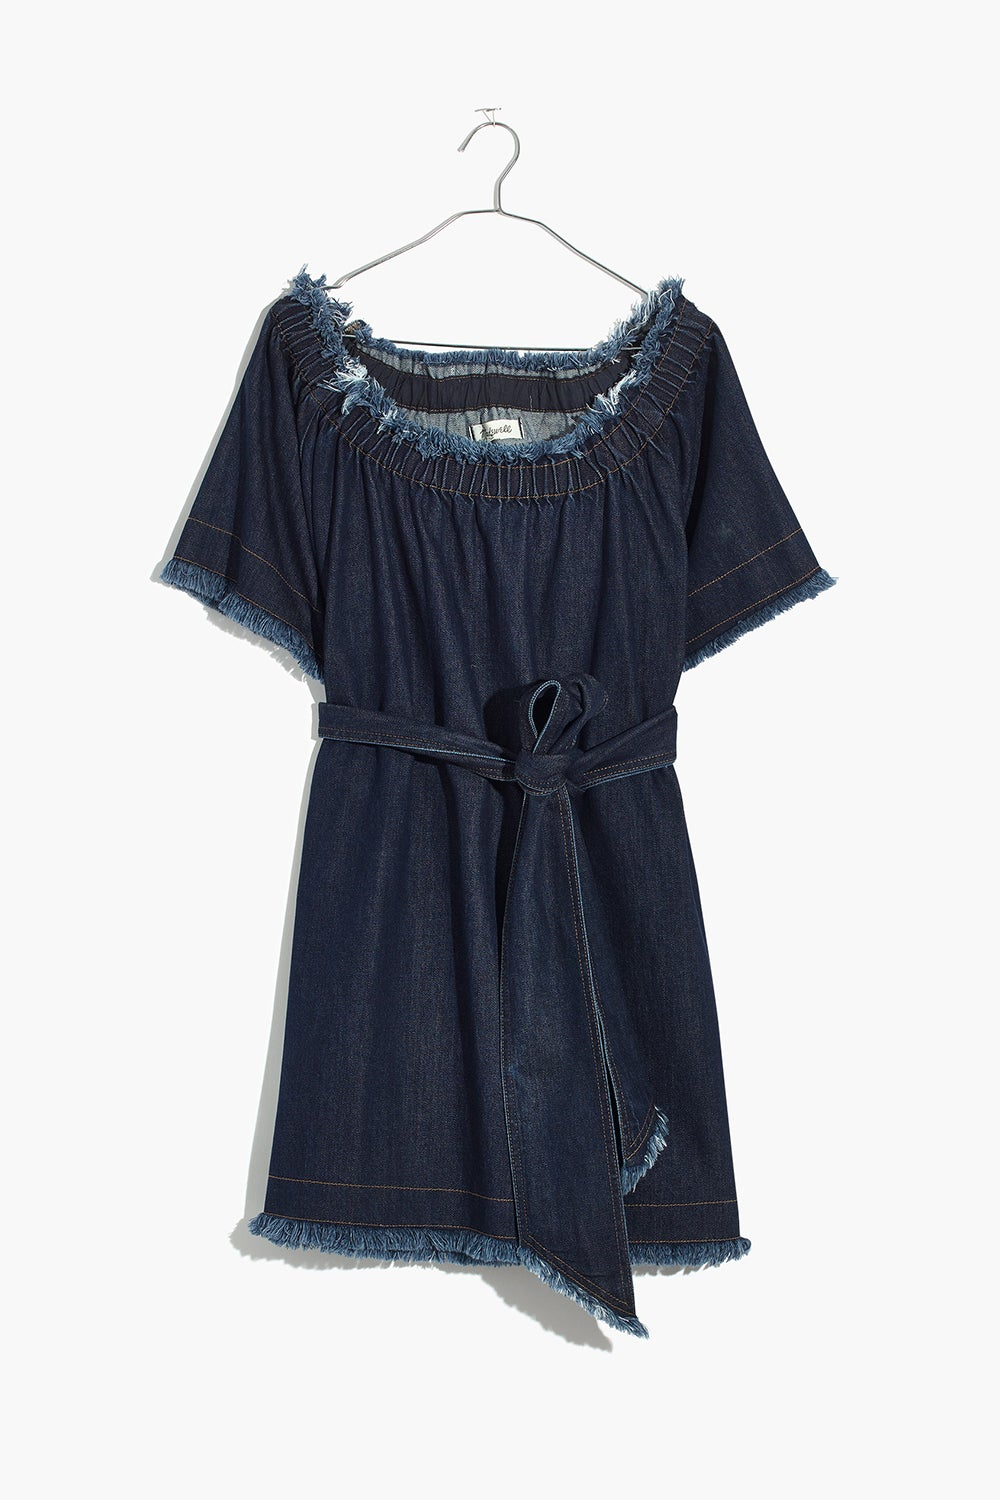 Madewell x Karen Walker Fathom Dress